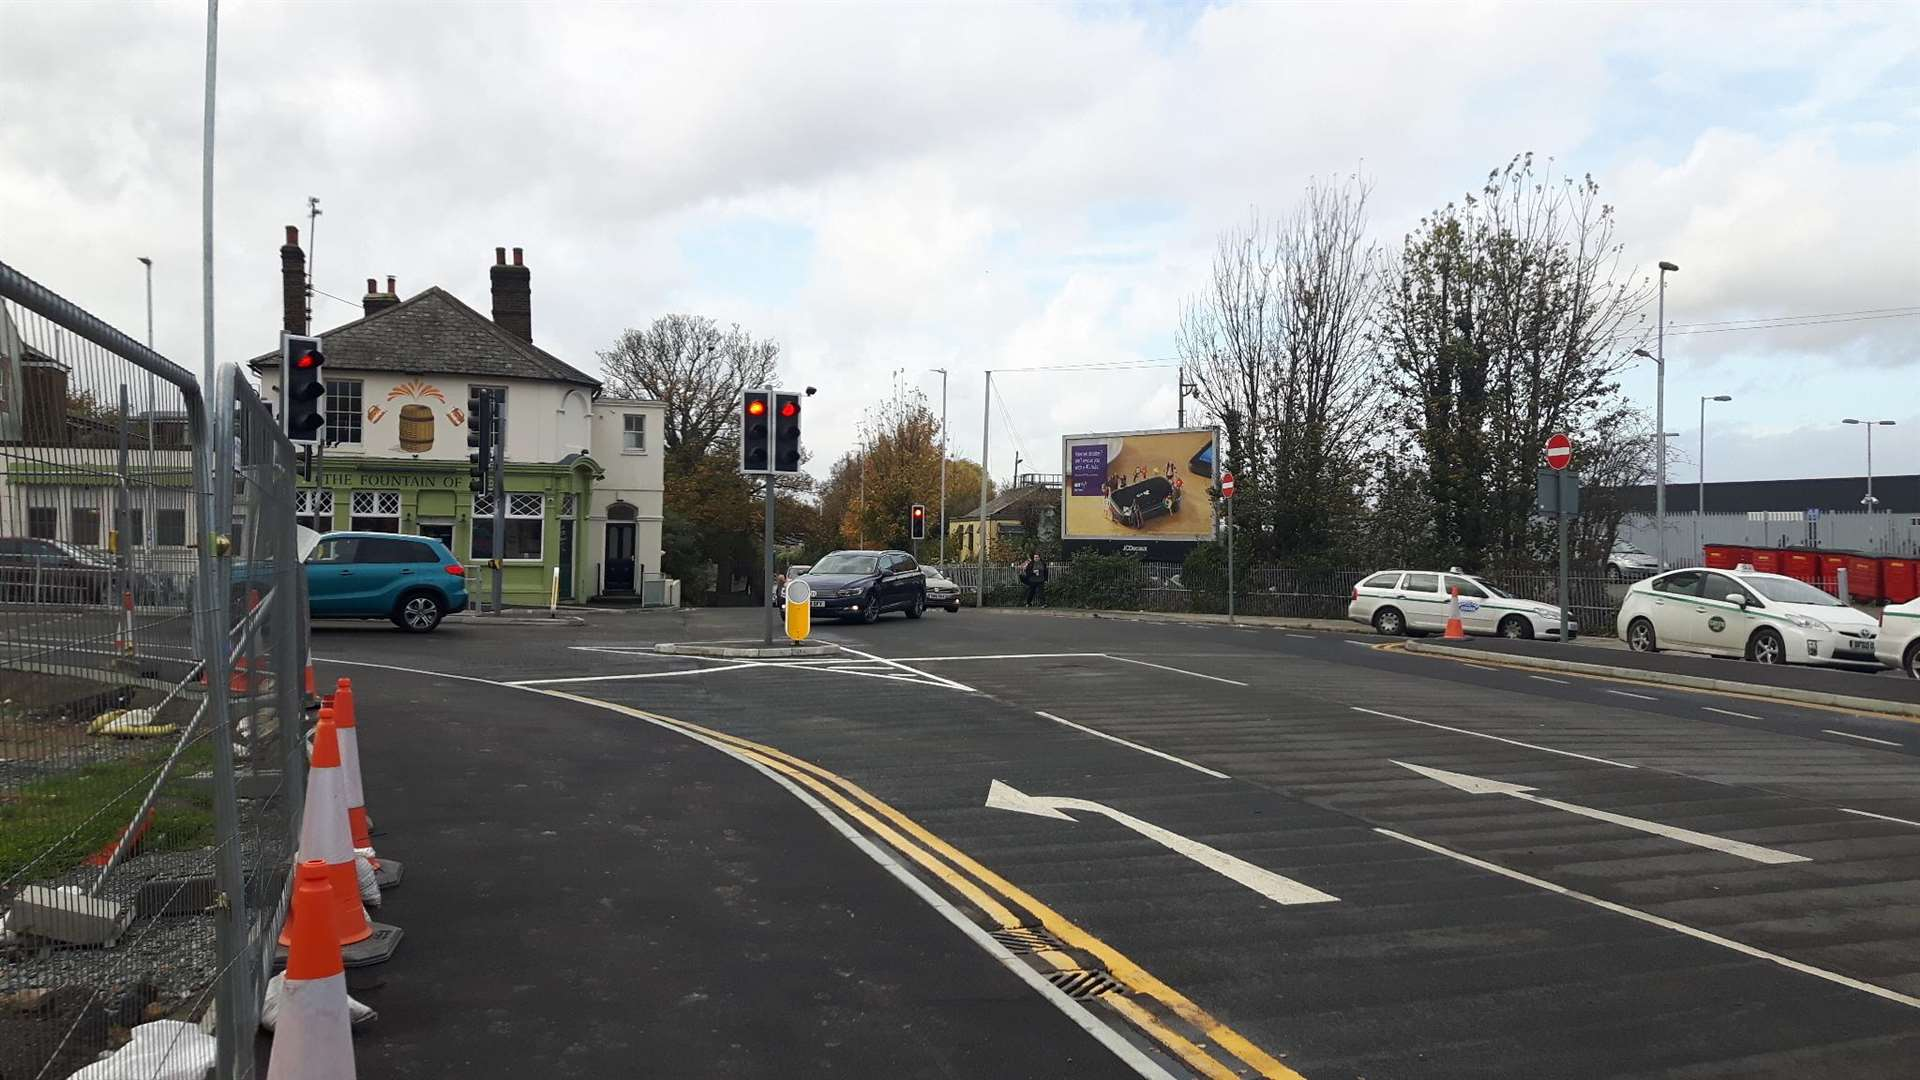 The new road layout outside the station looking towards the Fountain of Ale